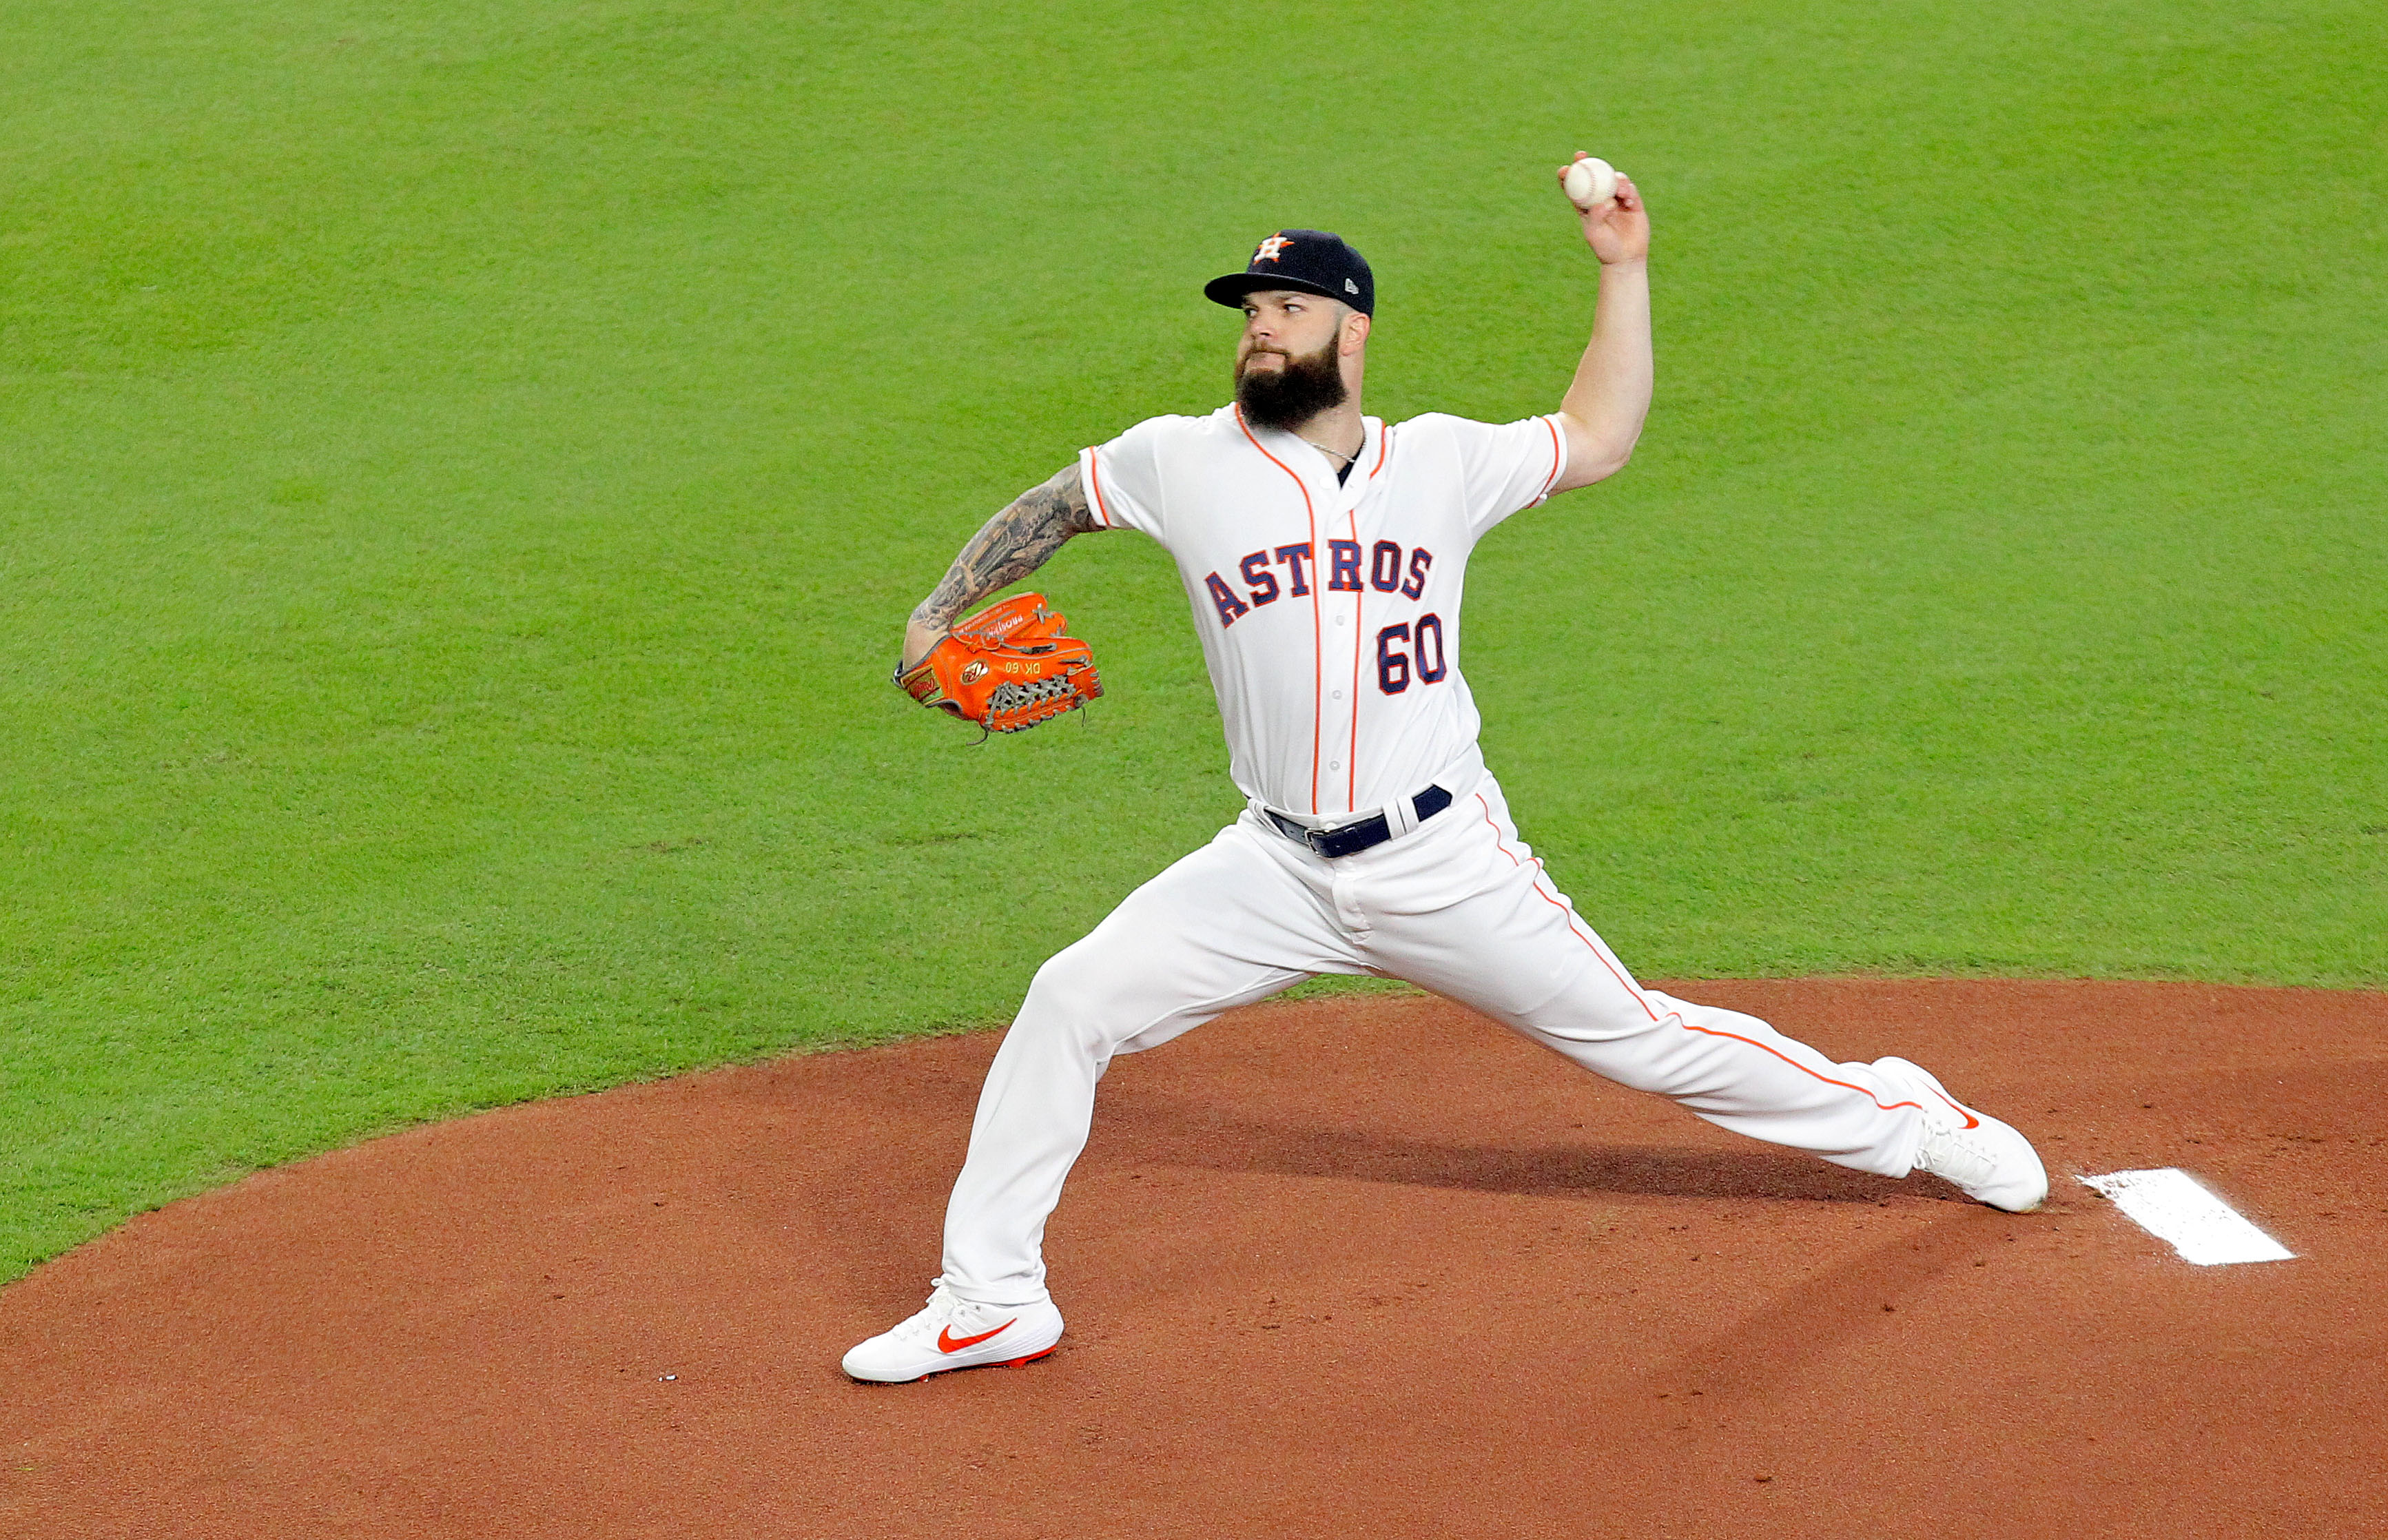 Report: Dallas Keuchel now willing to sign one-year deal